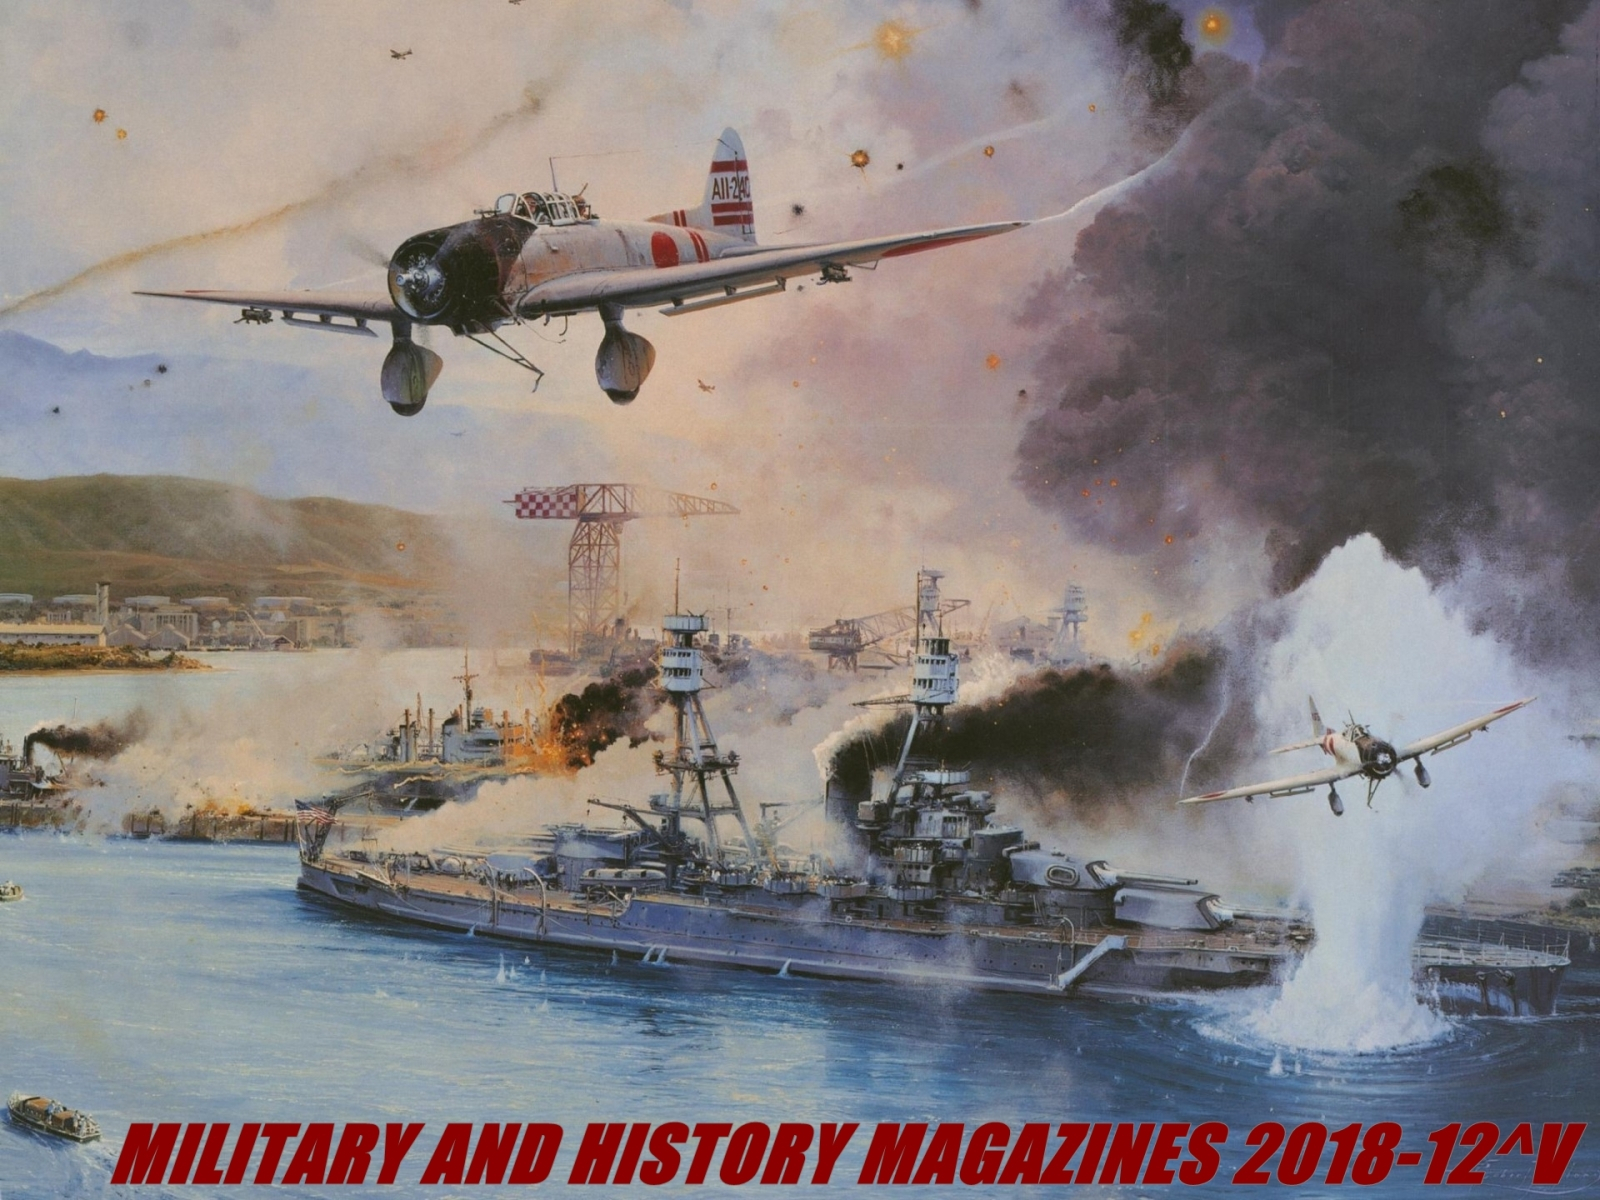 Military and History Magazines 2018-12